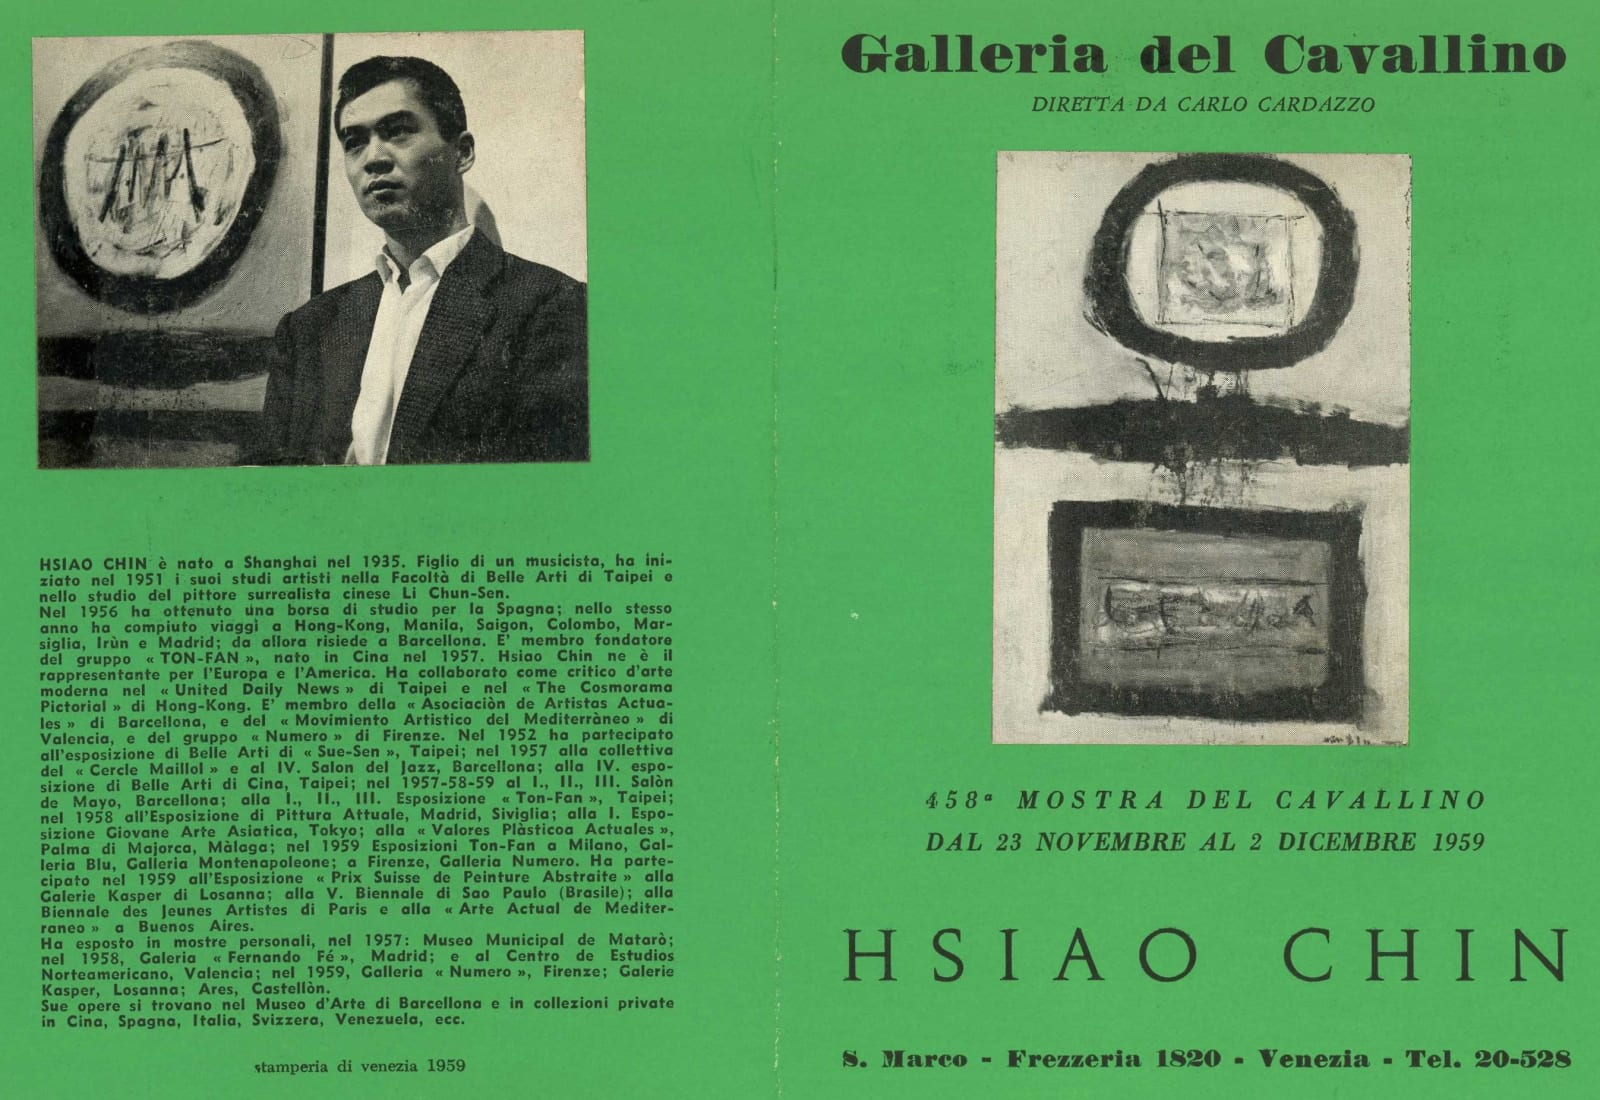 Nov-Dec 1959, Hsiao Chin's solo exhibition in Venice 1959年11月至12月蕭勤威尼斯個展